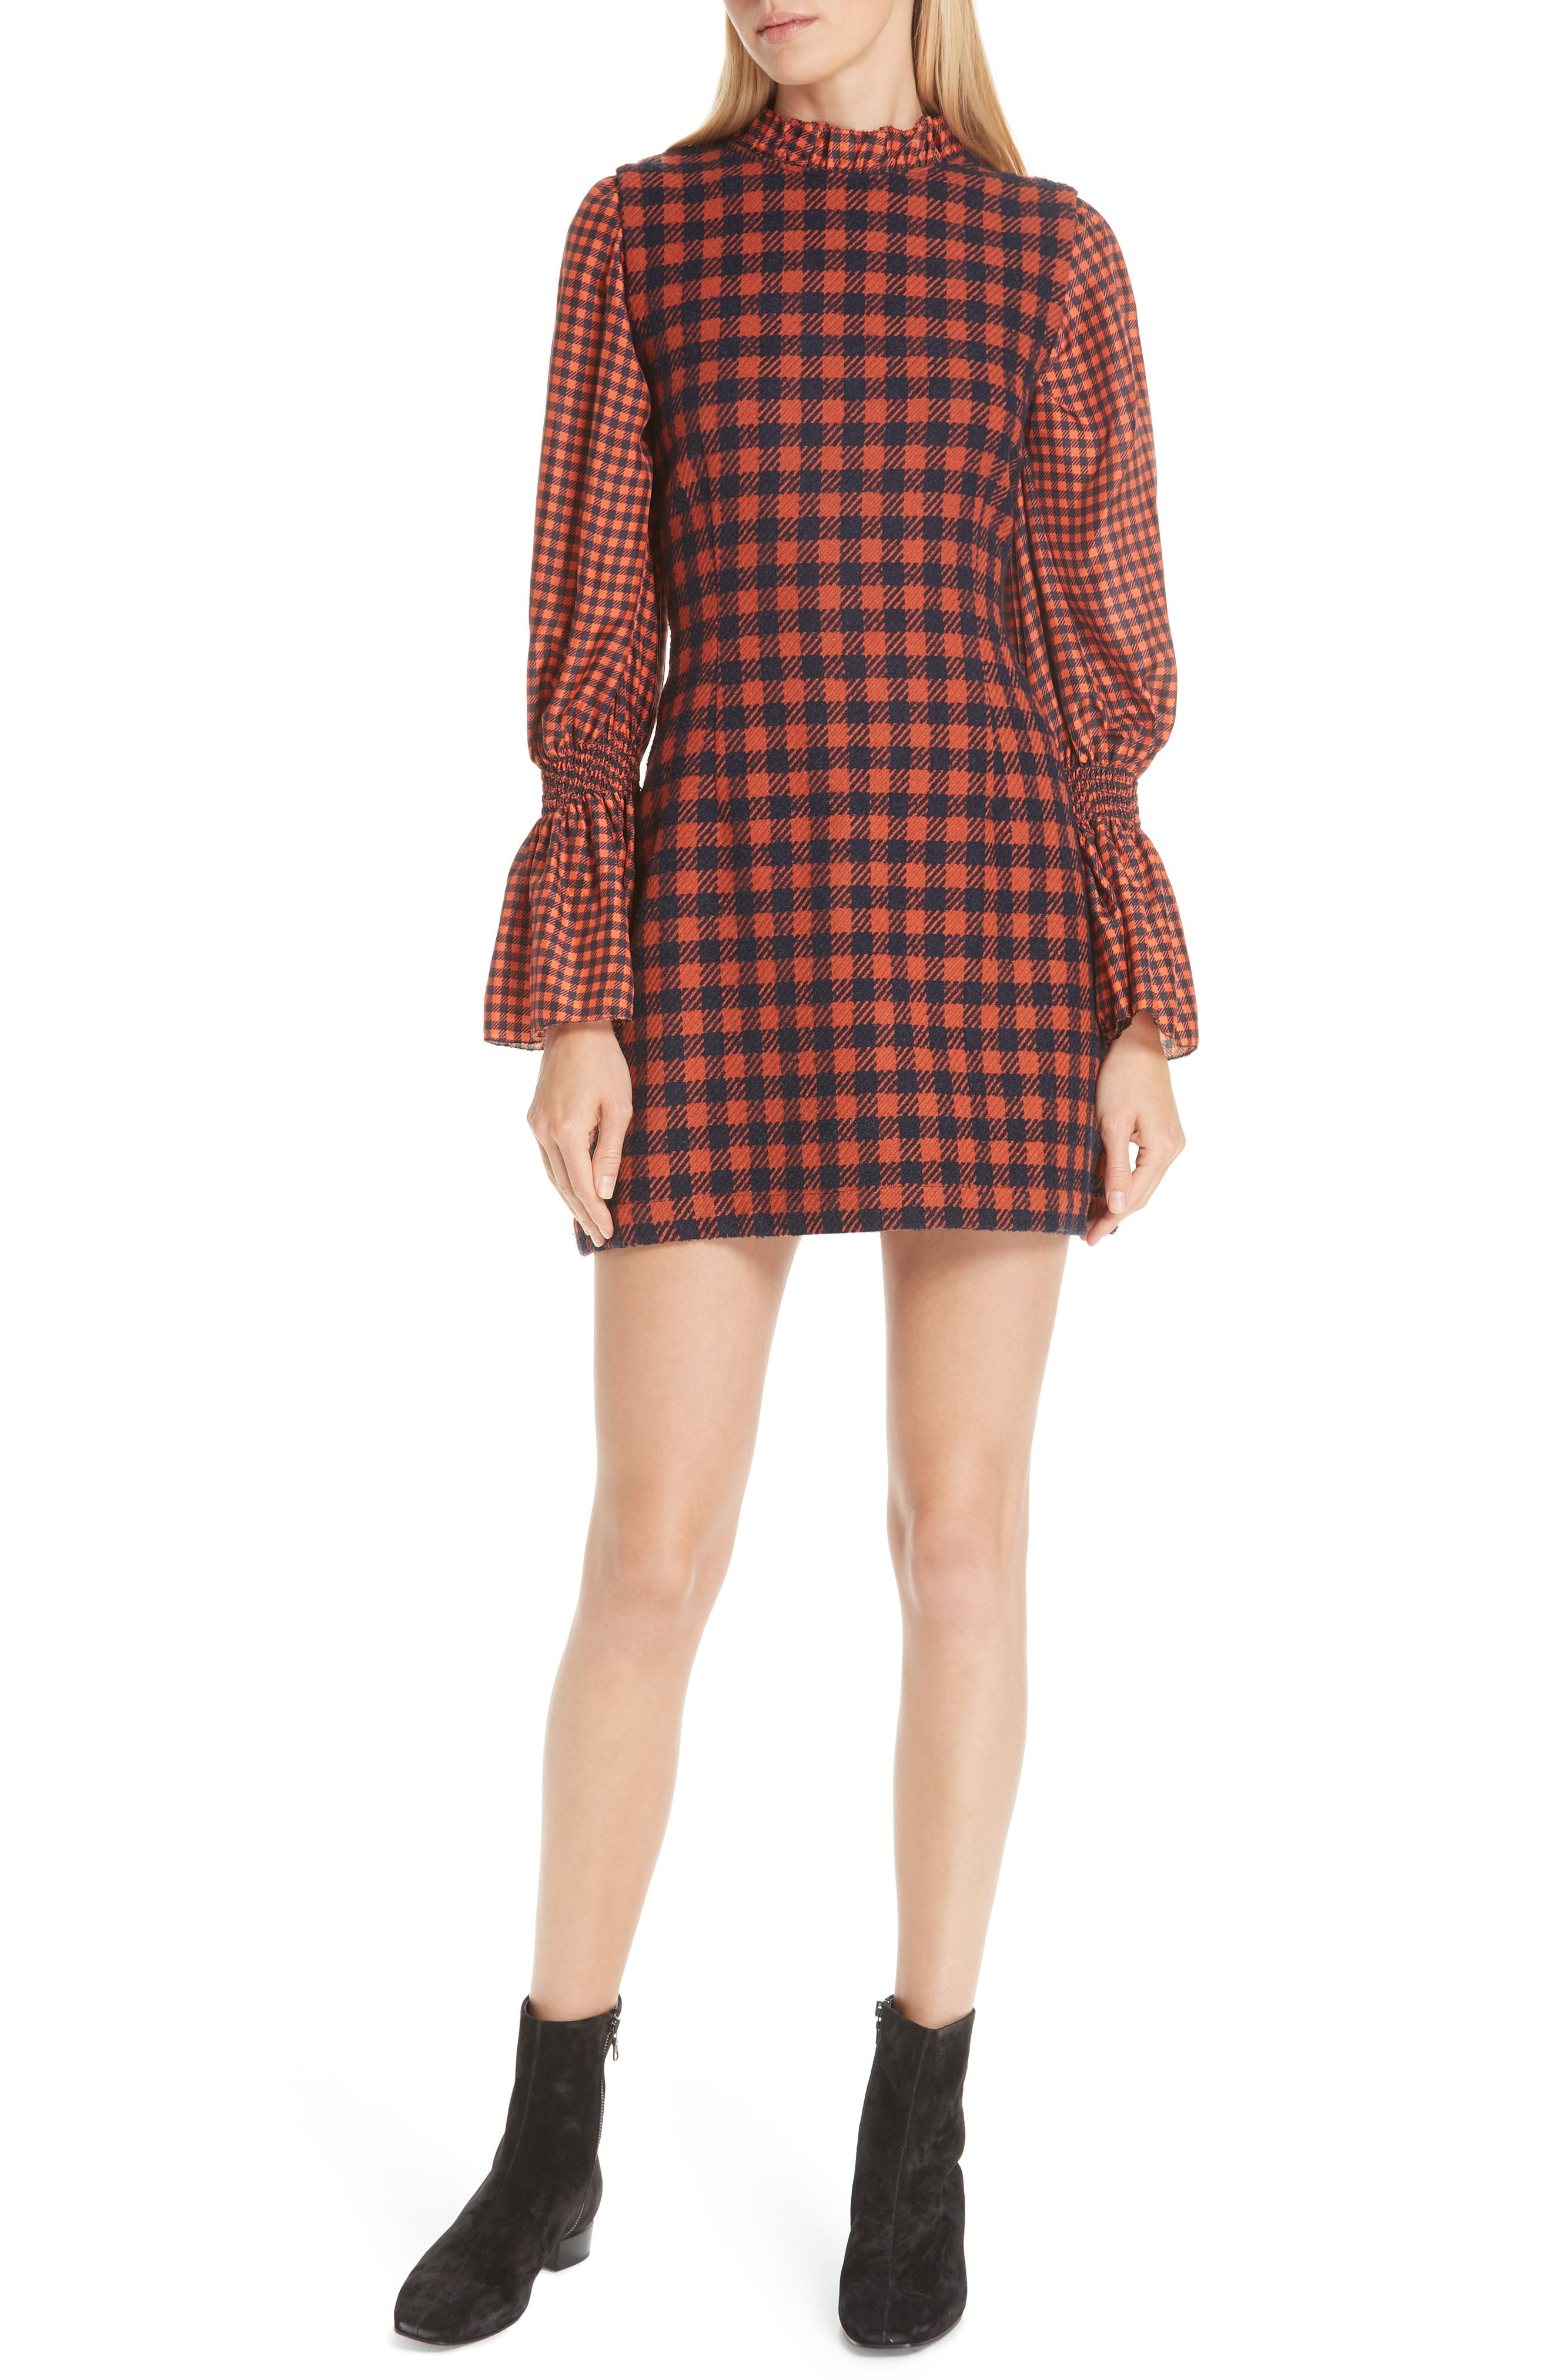 Ethno Pop Checkered Combo Dress,                             Main thumbnail 1, color,                             800